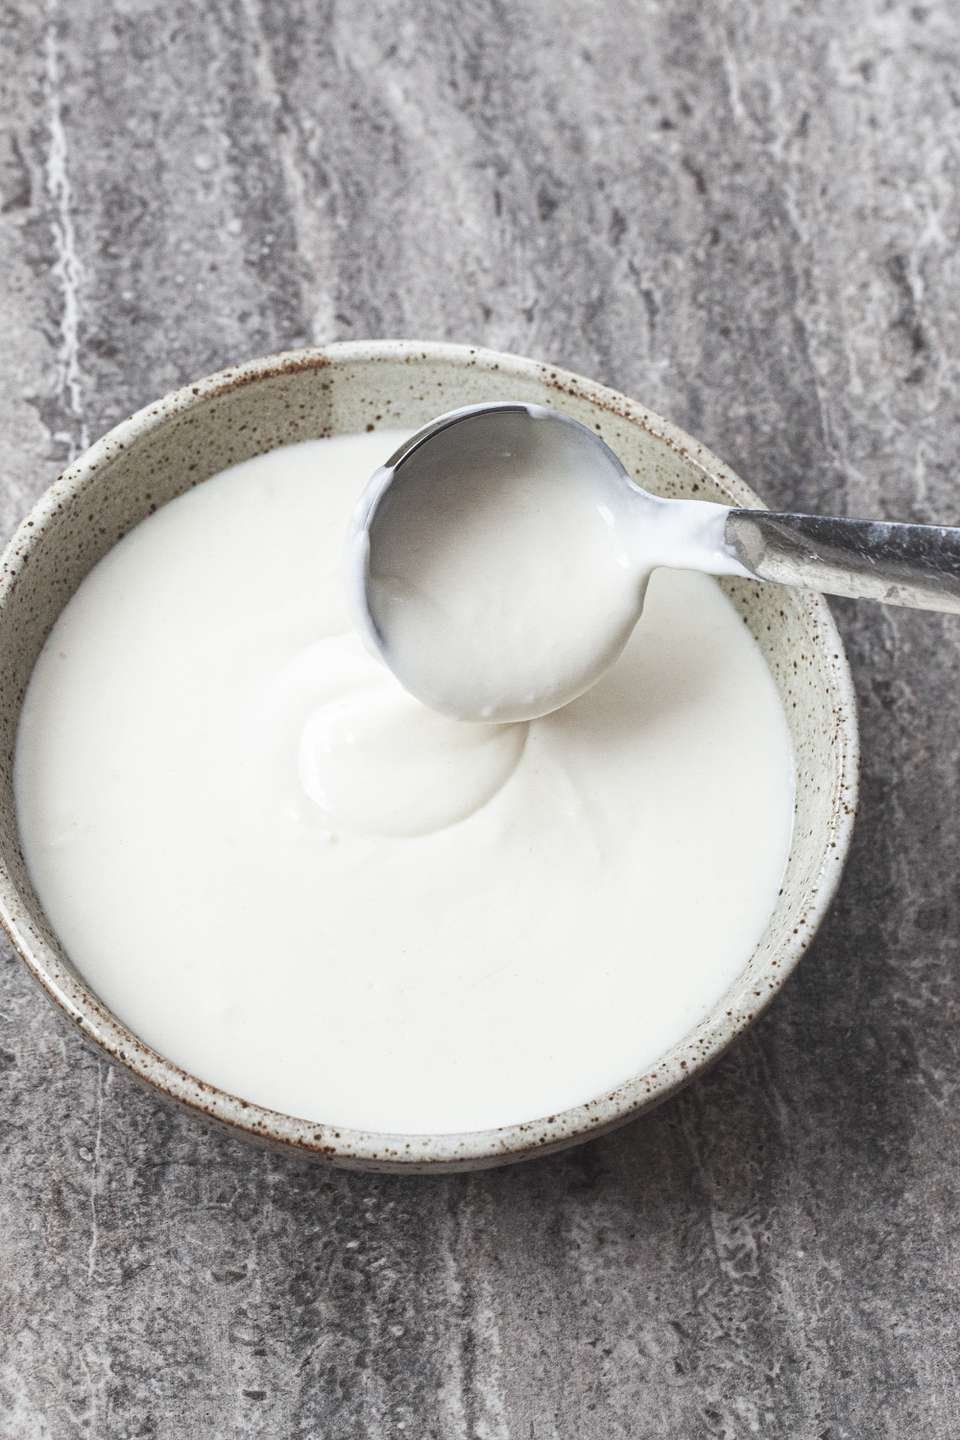 Basic béchamel sauce in a bowl with a small ladle dipping into the bowl.